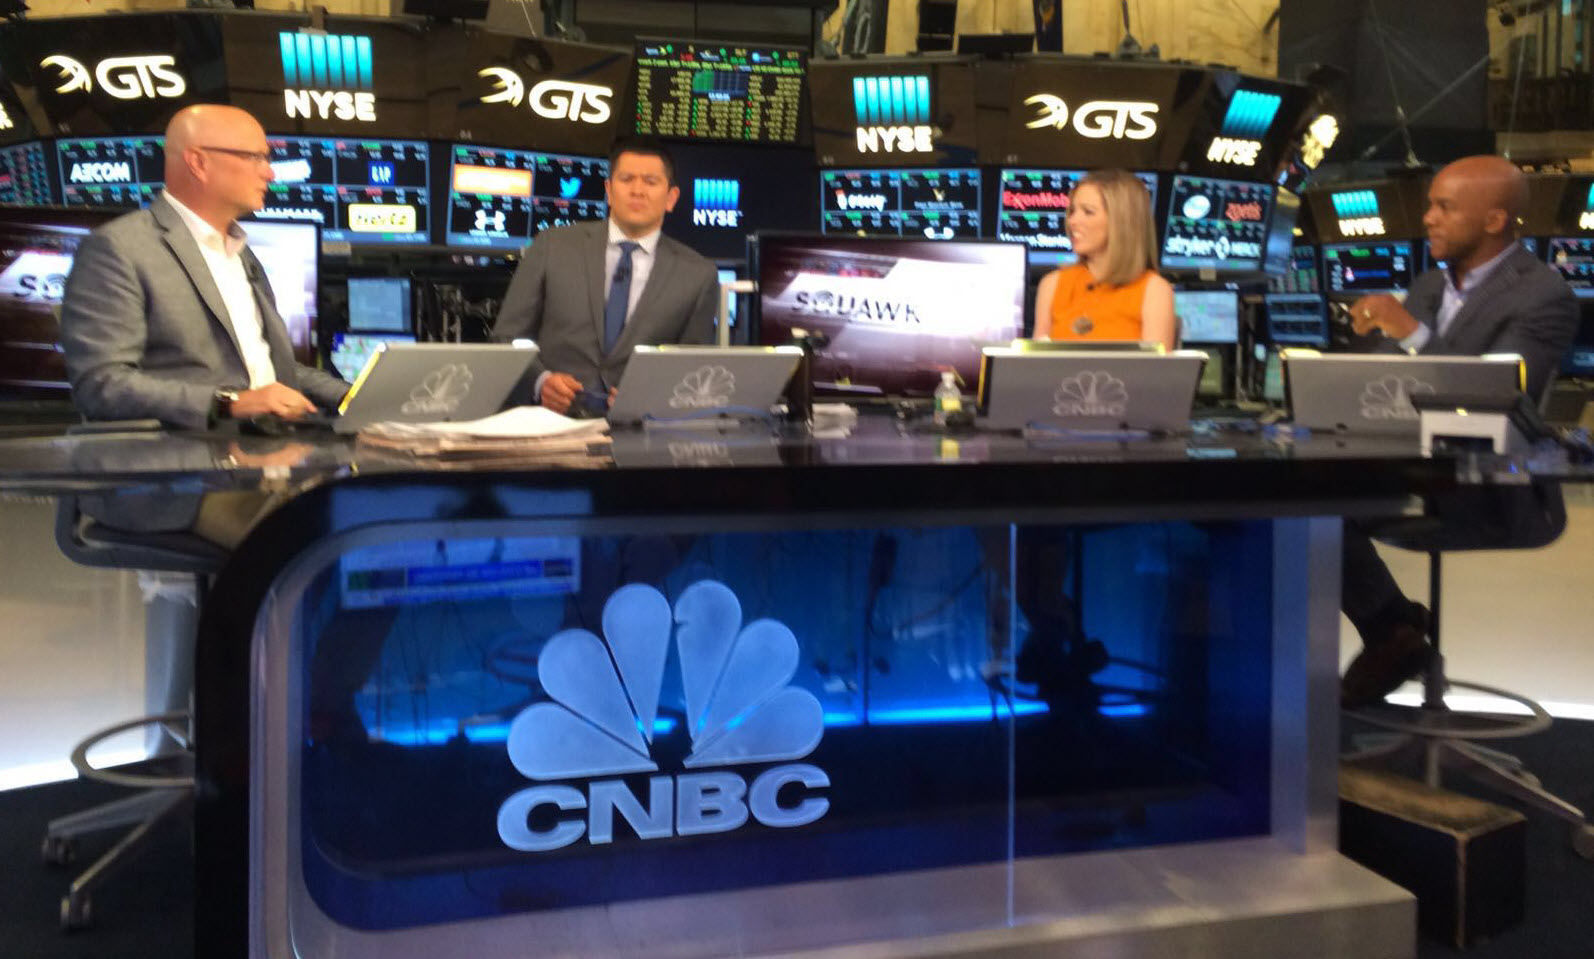 CTO Shane Wall announces HP Tech Ventures on CNBC.